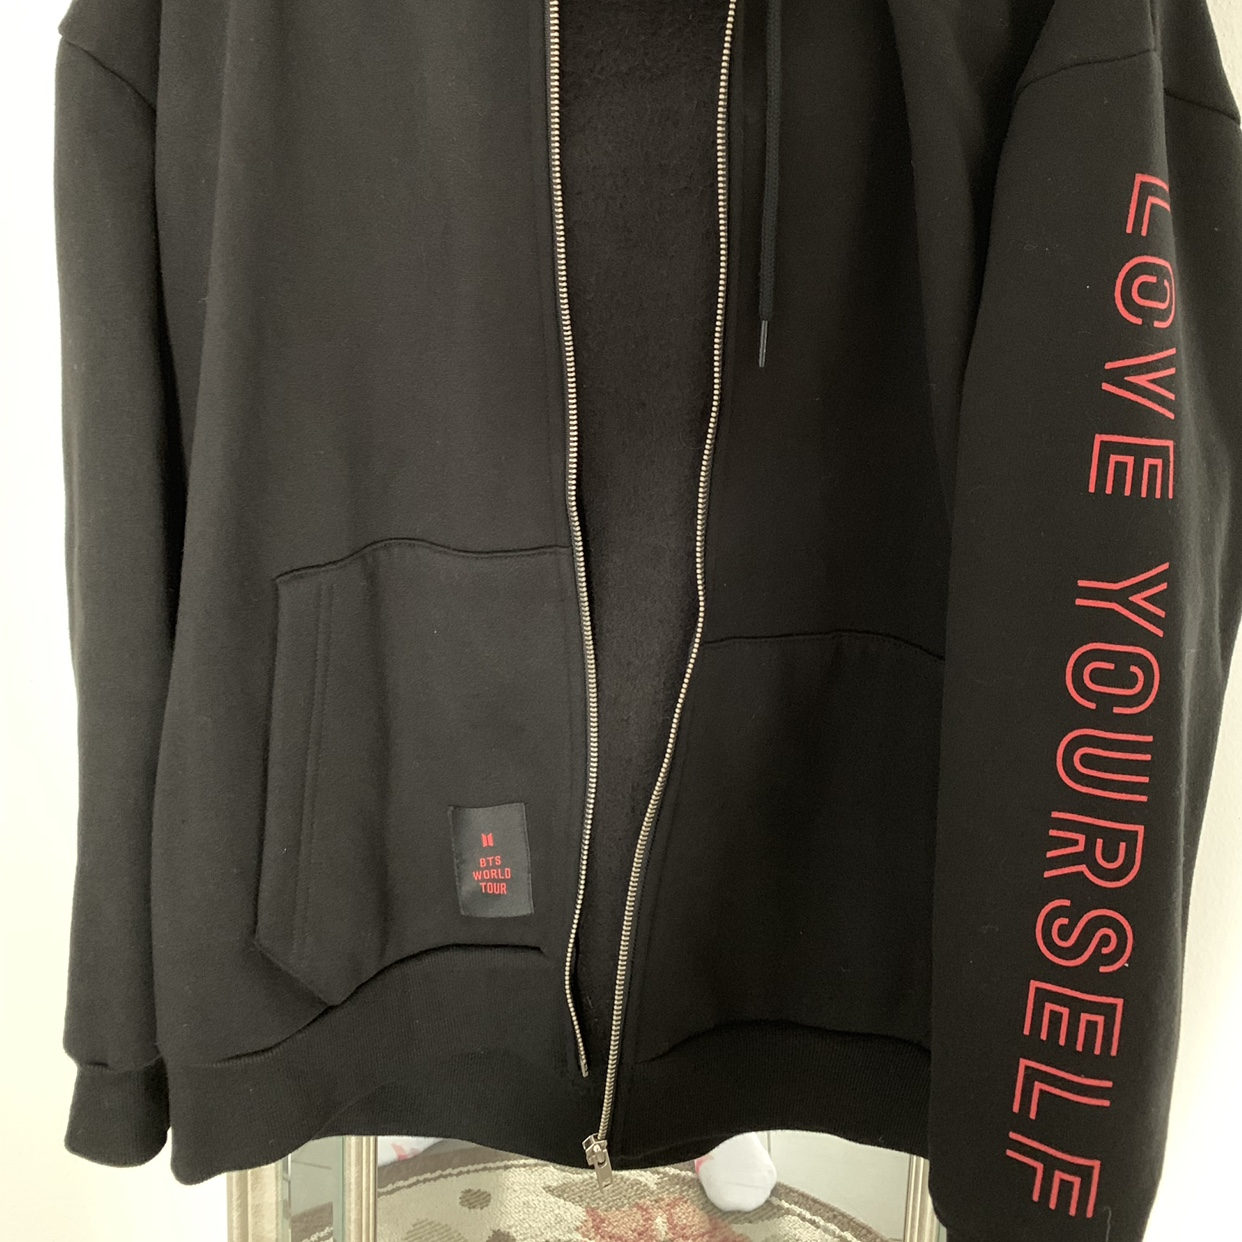 Bts Love Yourself Tour Hoodie Size 1 Equivalent To Depop